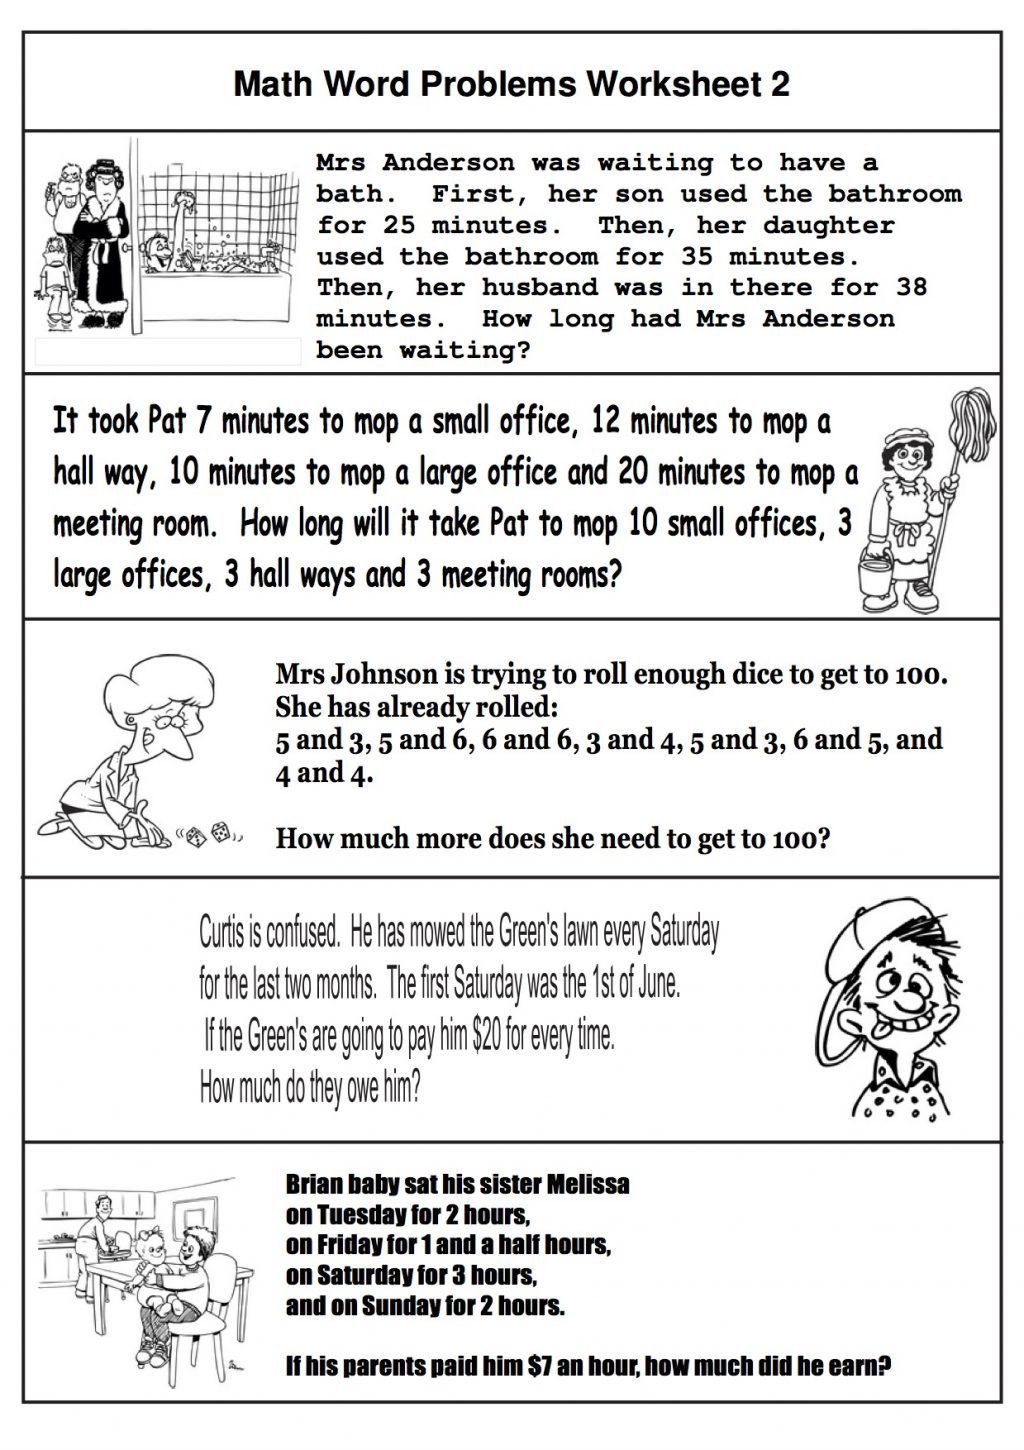 Multiple Step Word Problem Worksheets 2nd Grade Math Word Problems Best Coloring Pages for Kids